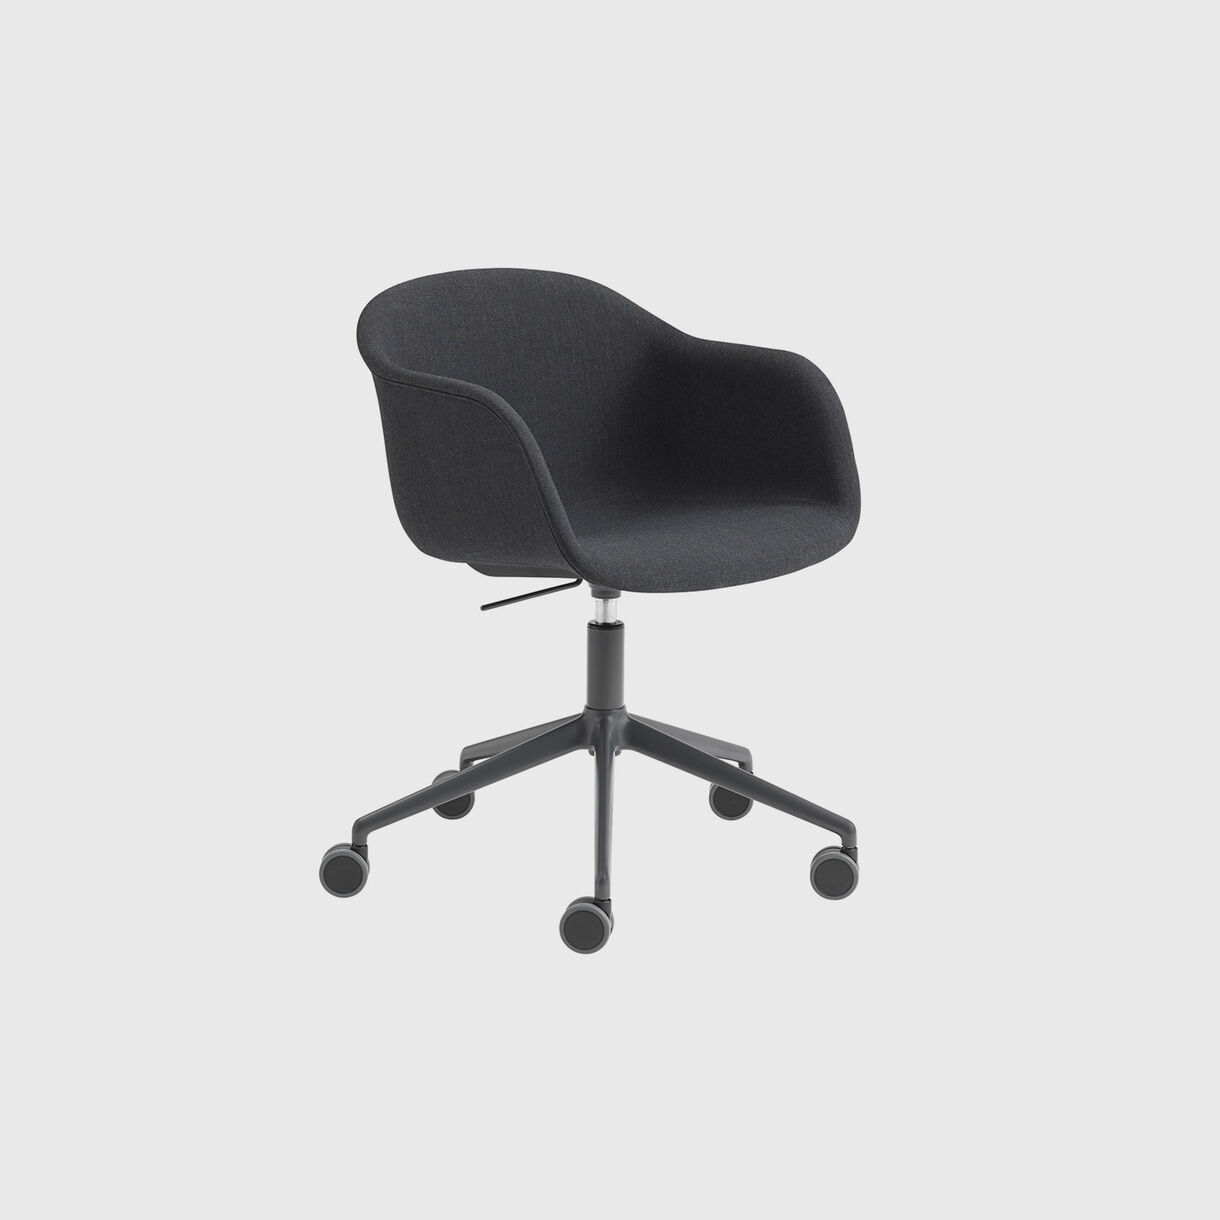 Fiber Armchair Upholstered, Remix 183 & Black, Swivel Base with Castors & Gas Lift, Grey